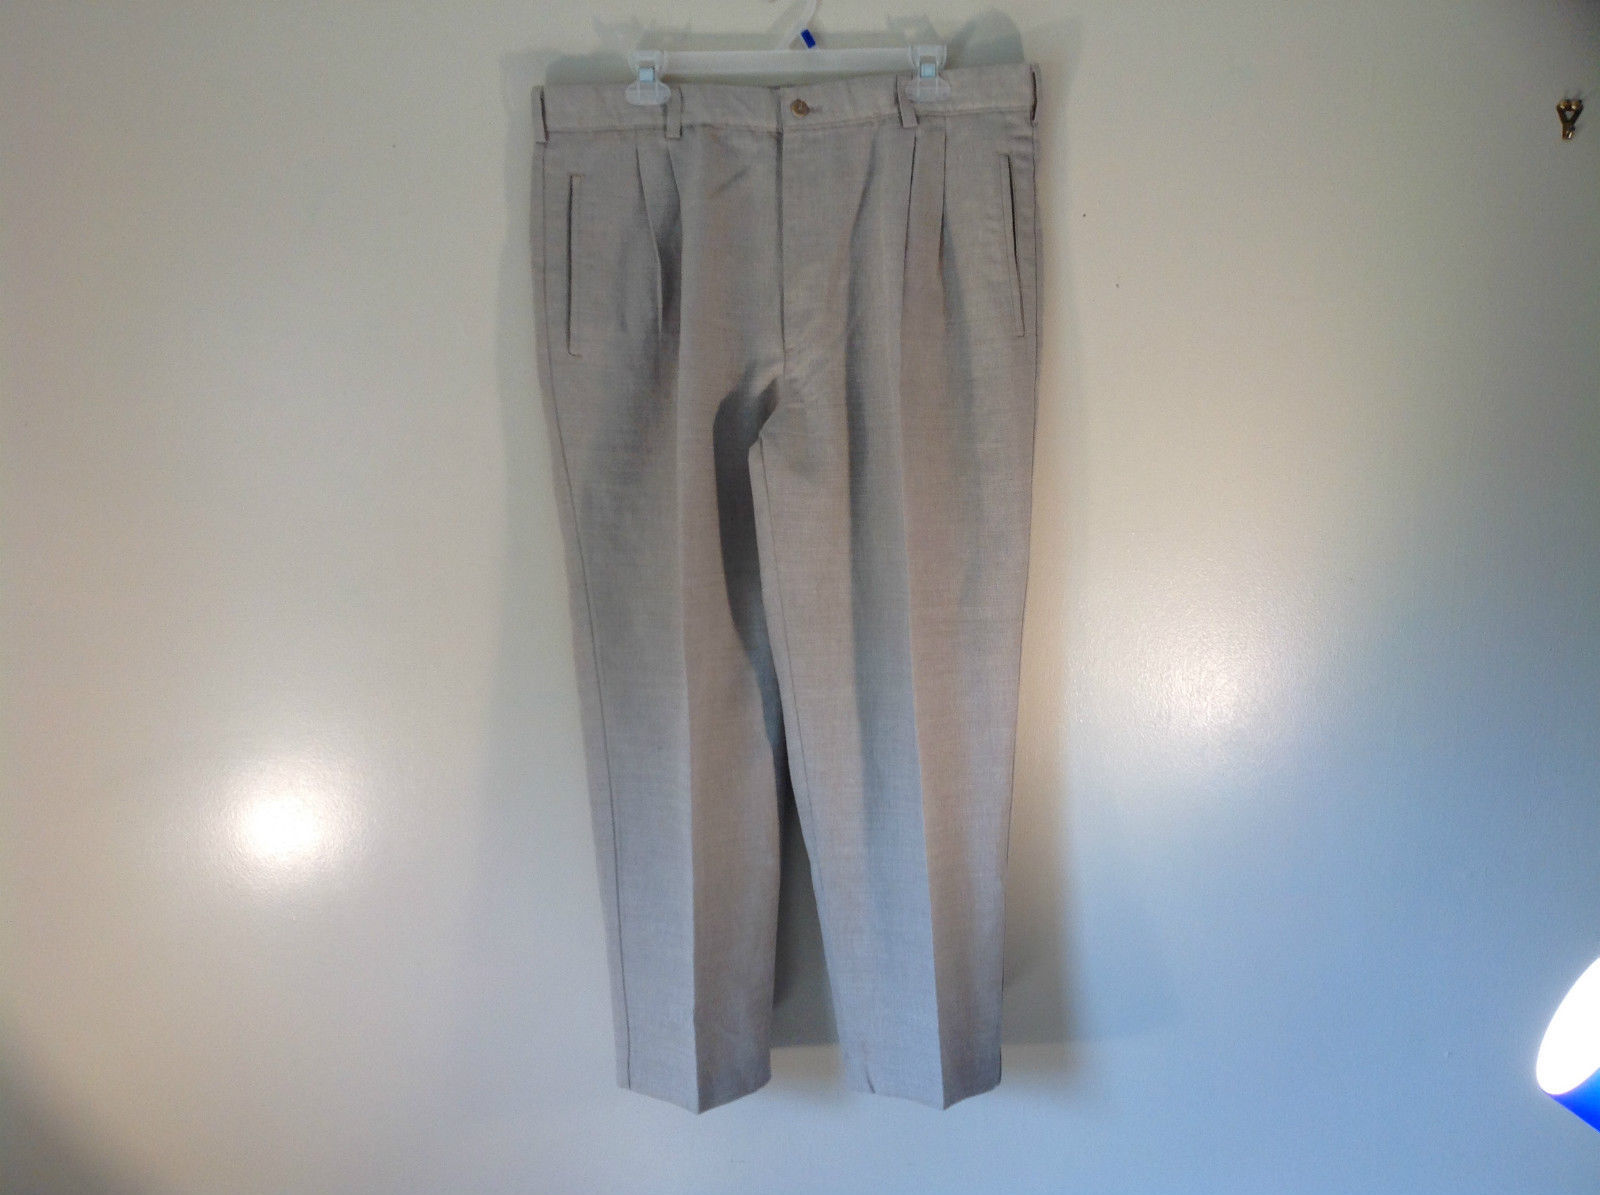 Savane No Wrinkles Pleated Front Beige Dress Pants Linen Cotton Blend Size 12